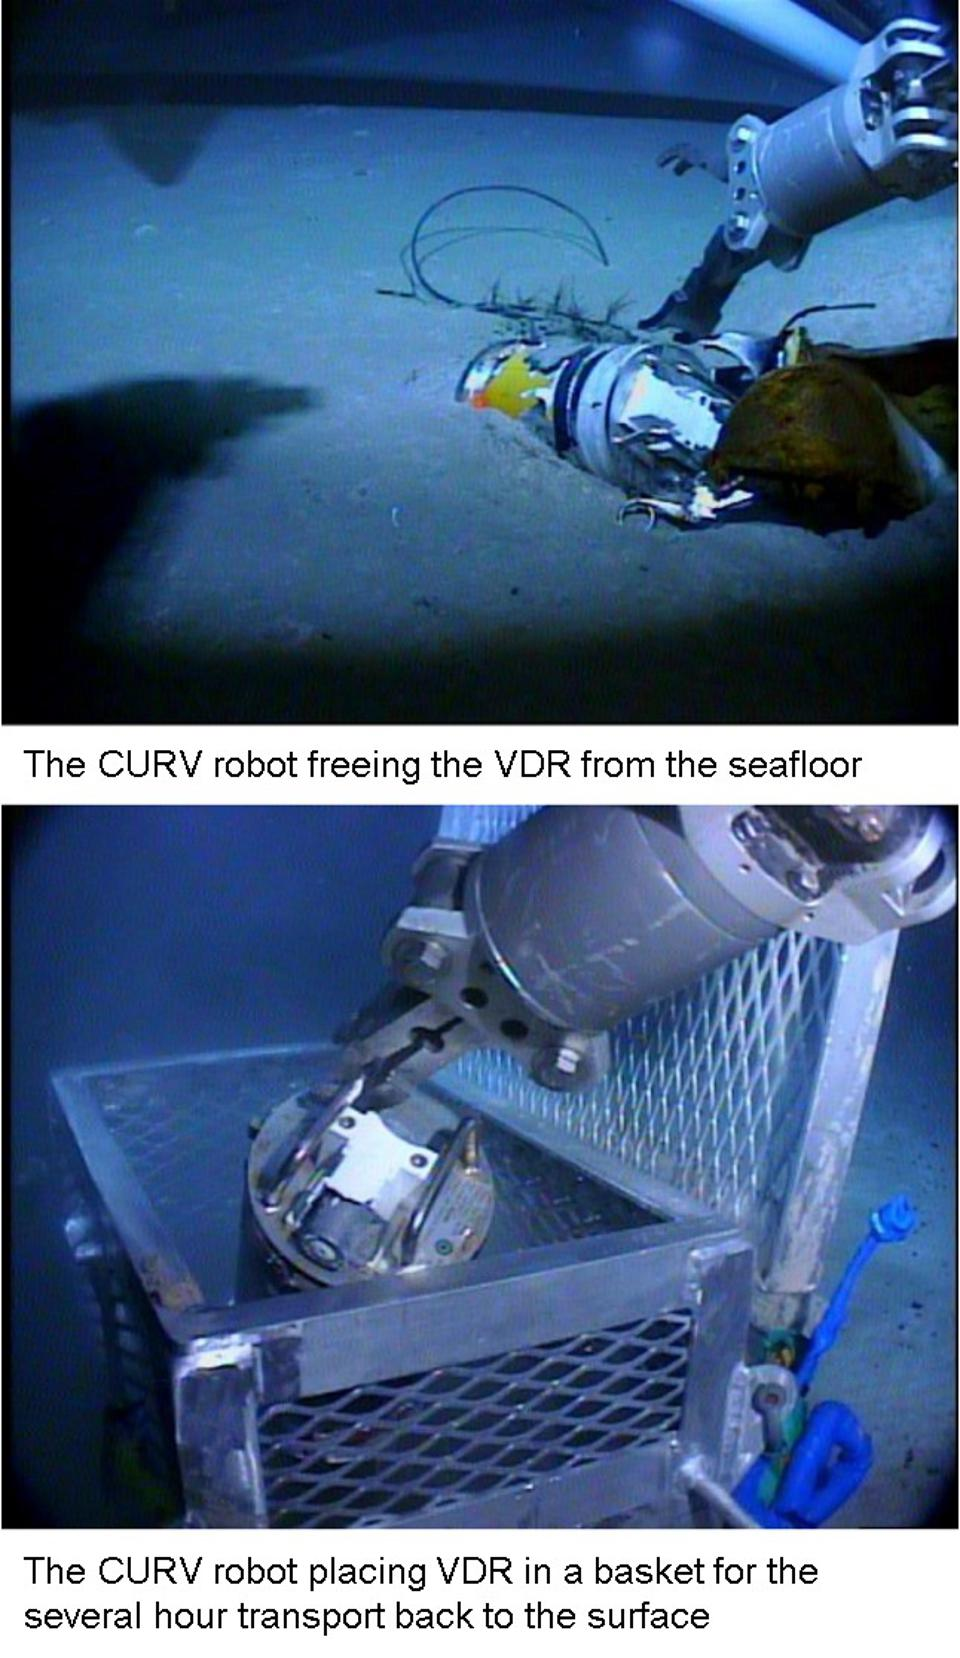 Images taken from CURV as the VDR was retrieved from the seabed and placed safely in a metal basket for the multi-hour, slow ascent to the surface.